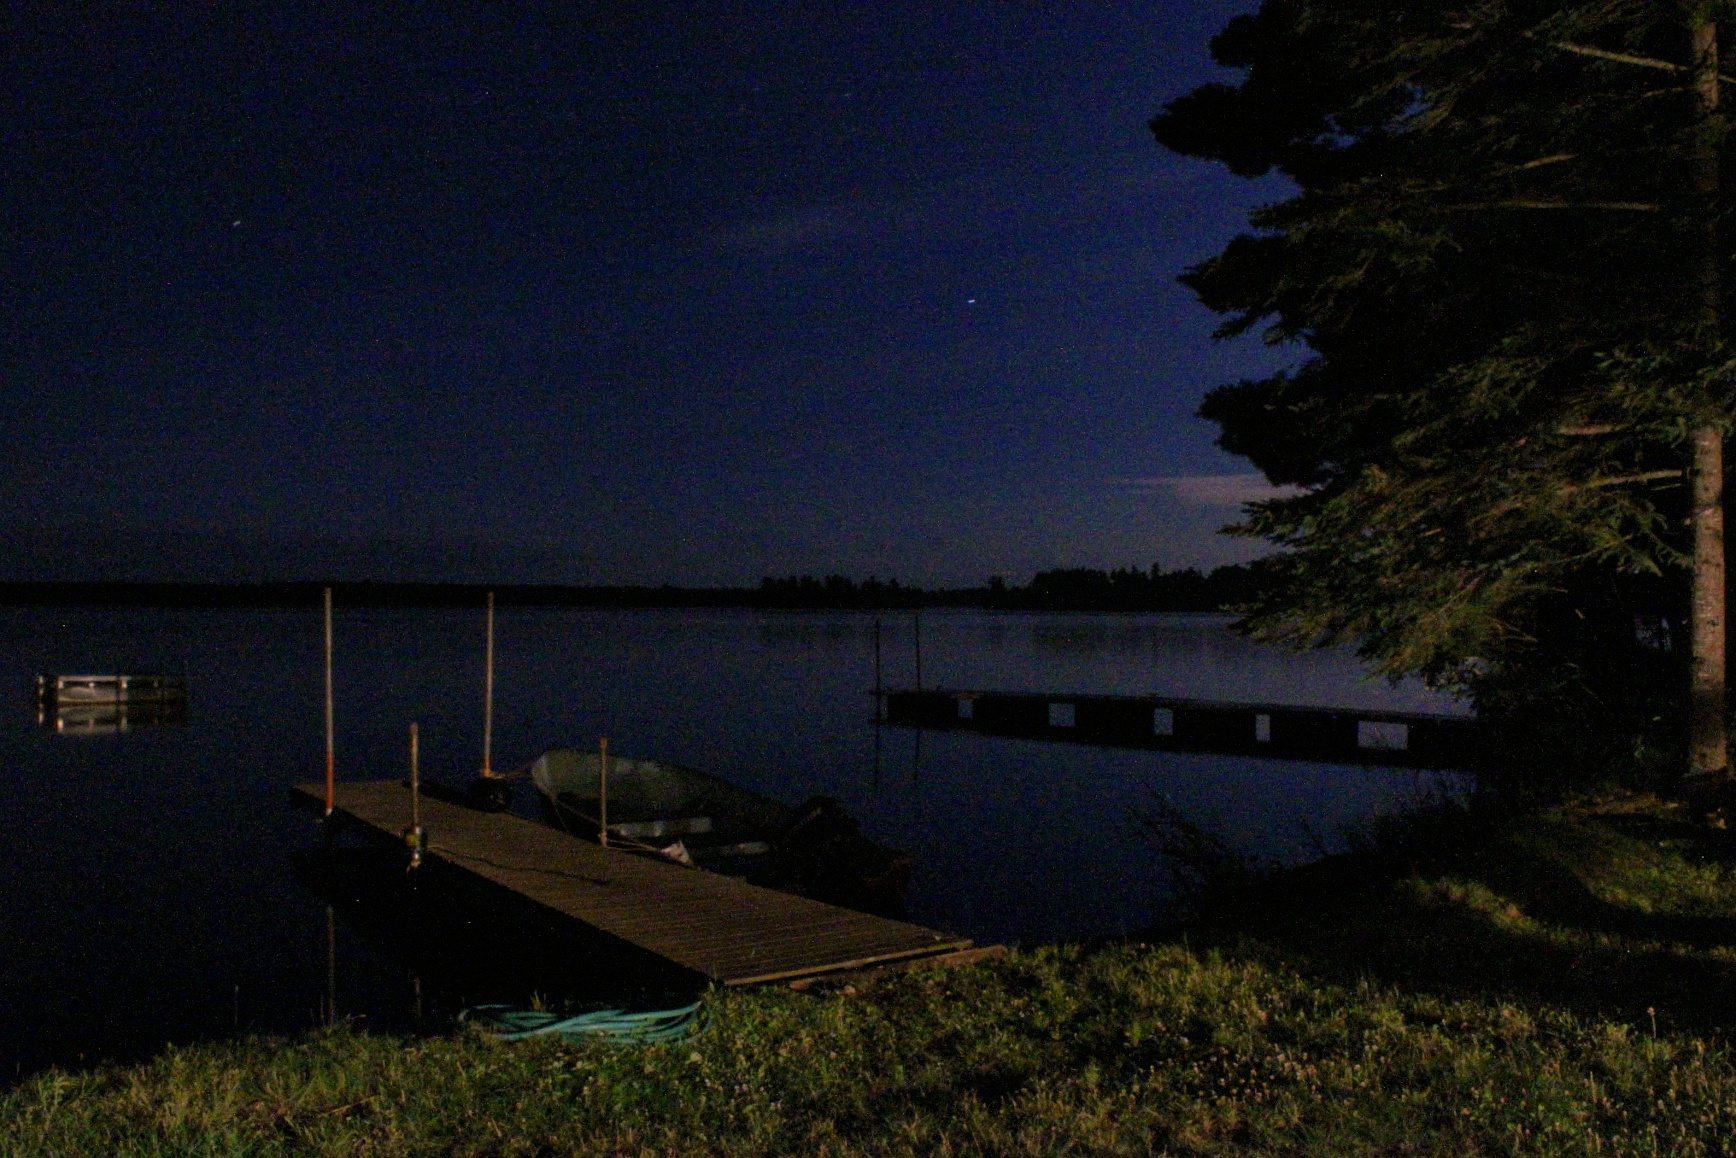 another night shot from the cabin